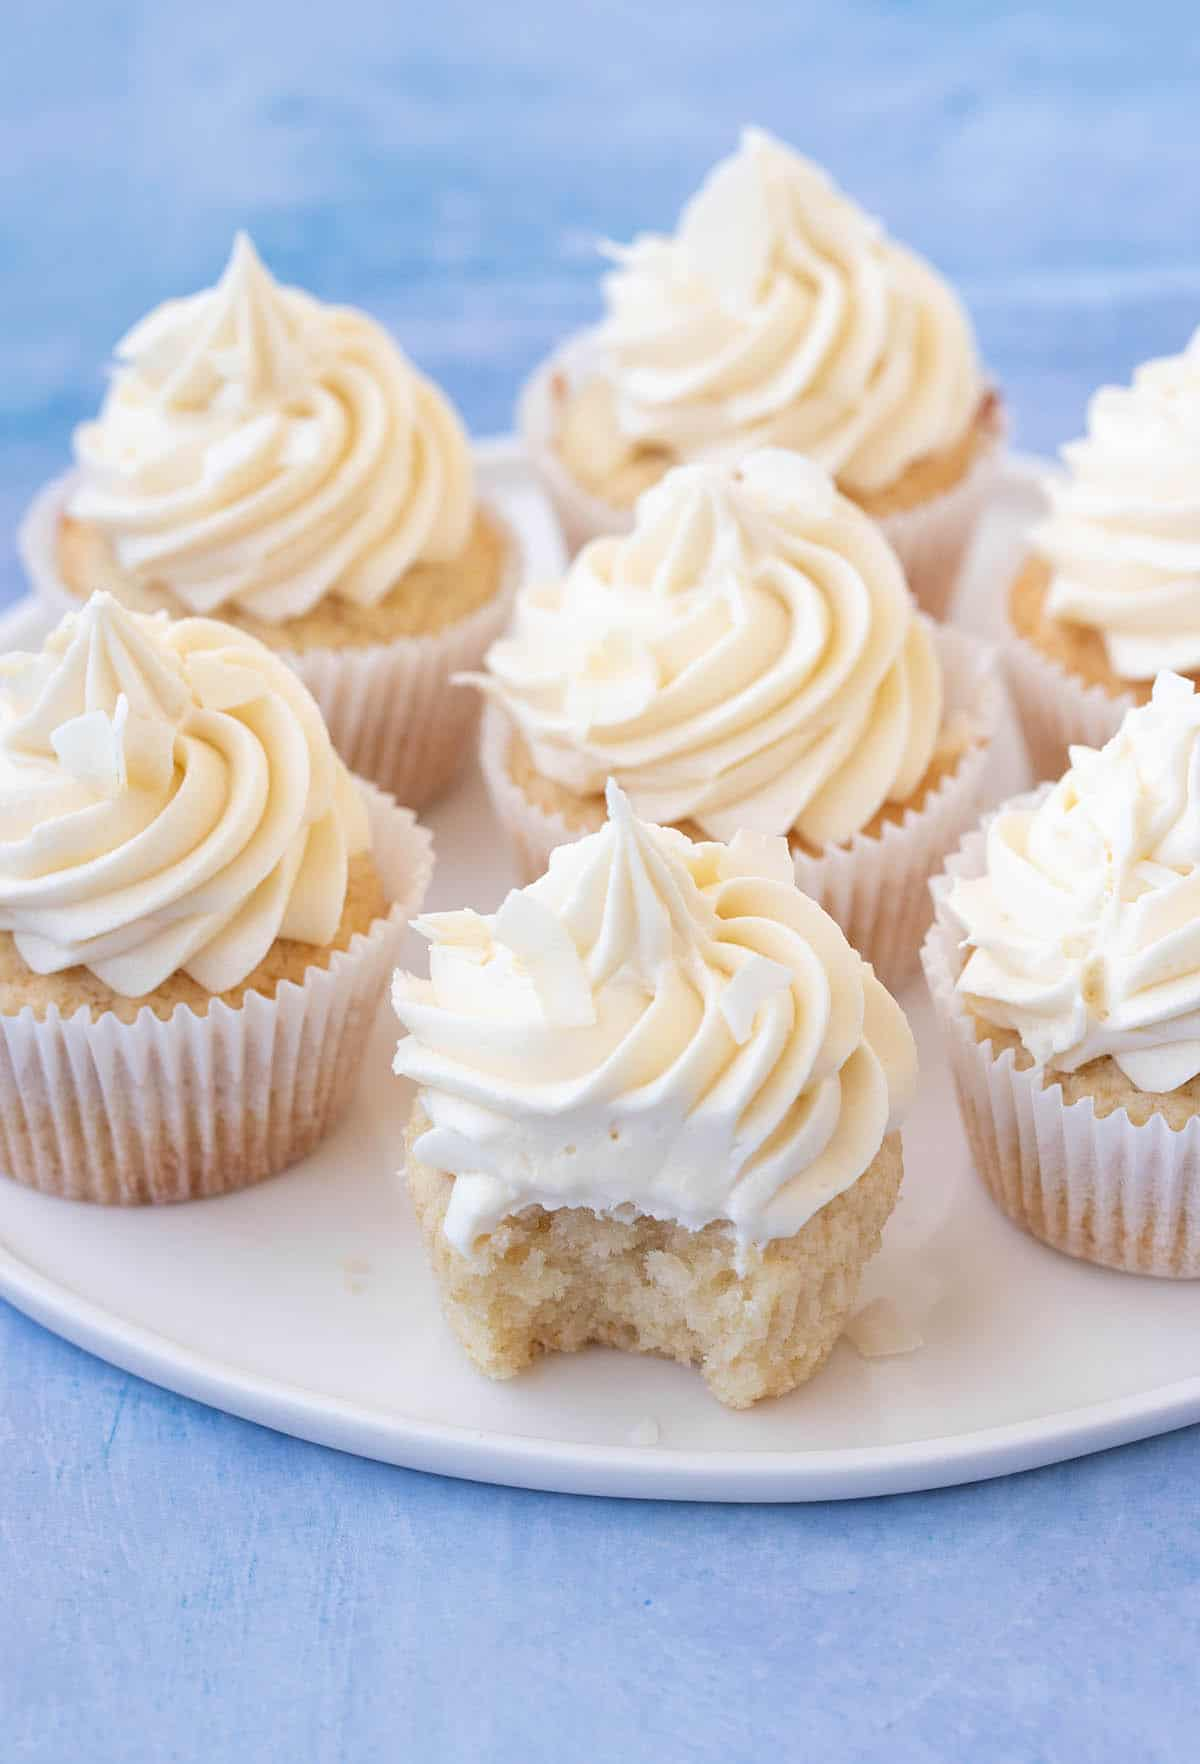 A plate filled with homemade Coconut Cupcakes. One has a bit taken out of it.